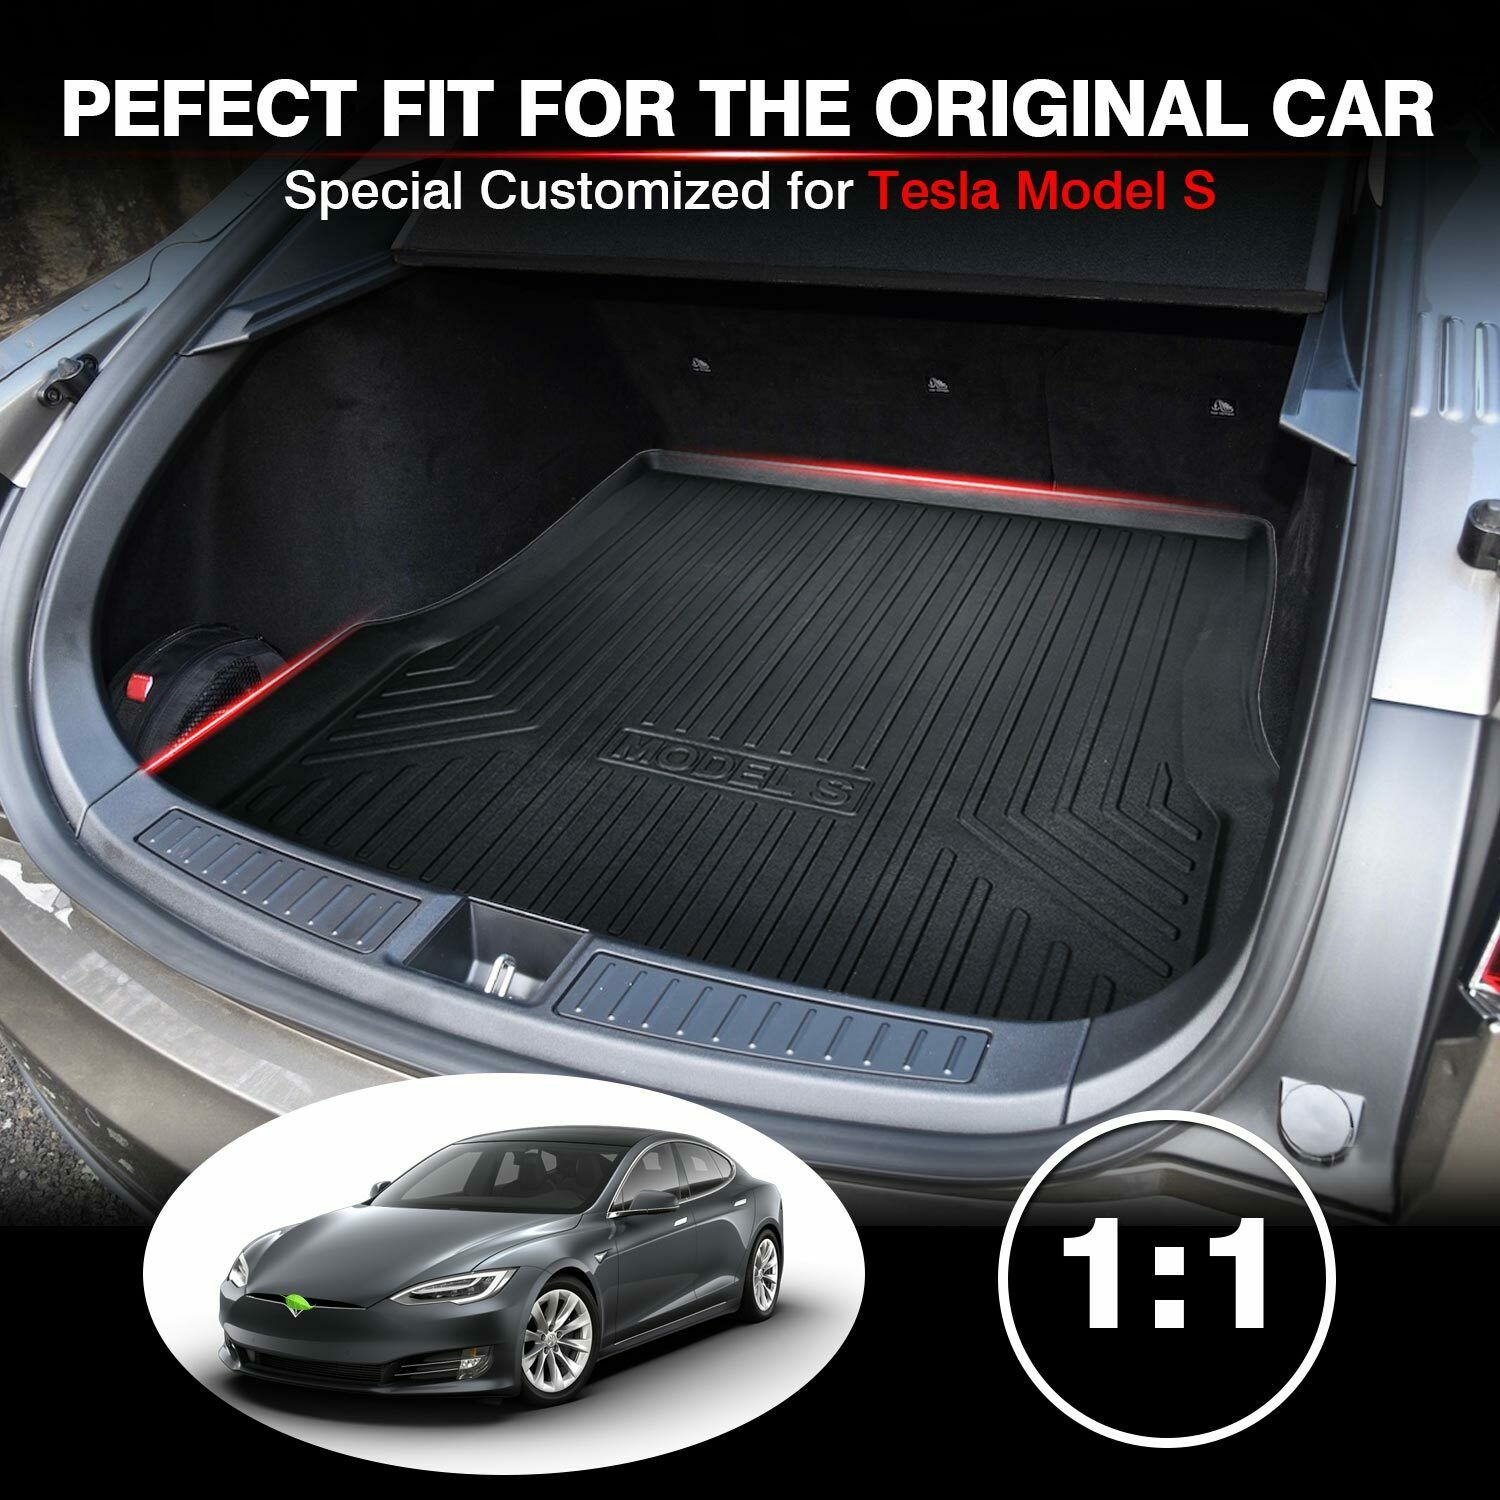 2017 Tailored Fit Rubber Boot Liner Protector Mat for Tesla Model S liftback under hood space,HromTech